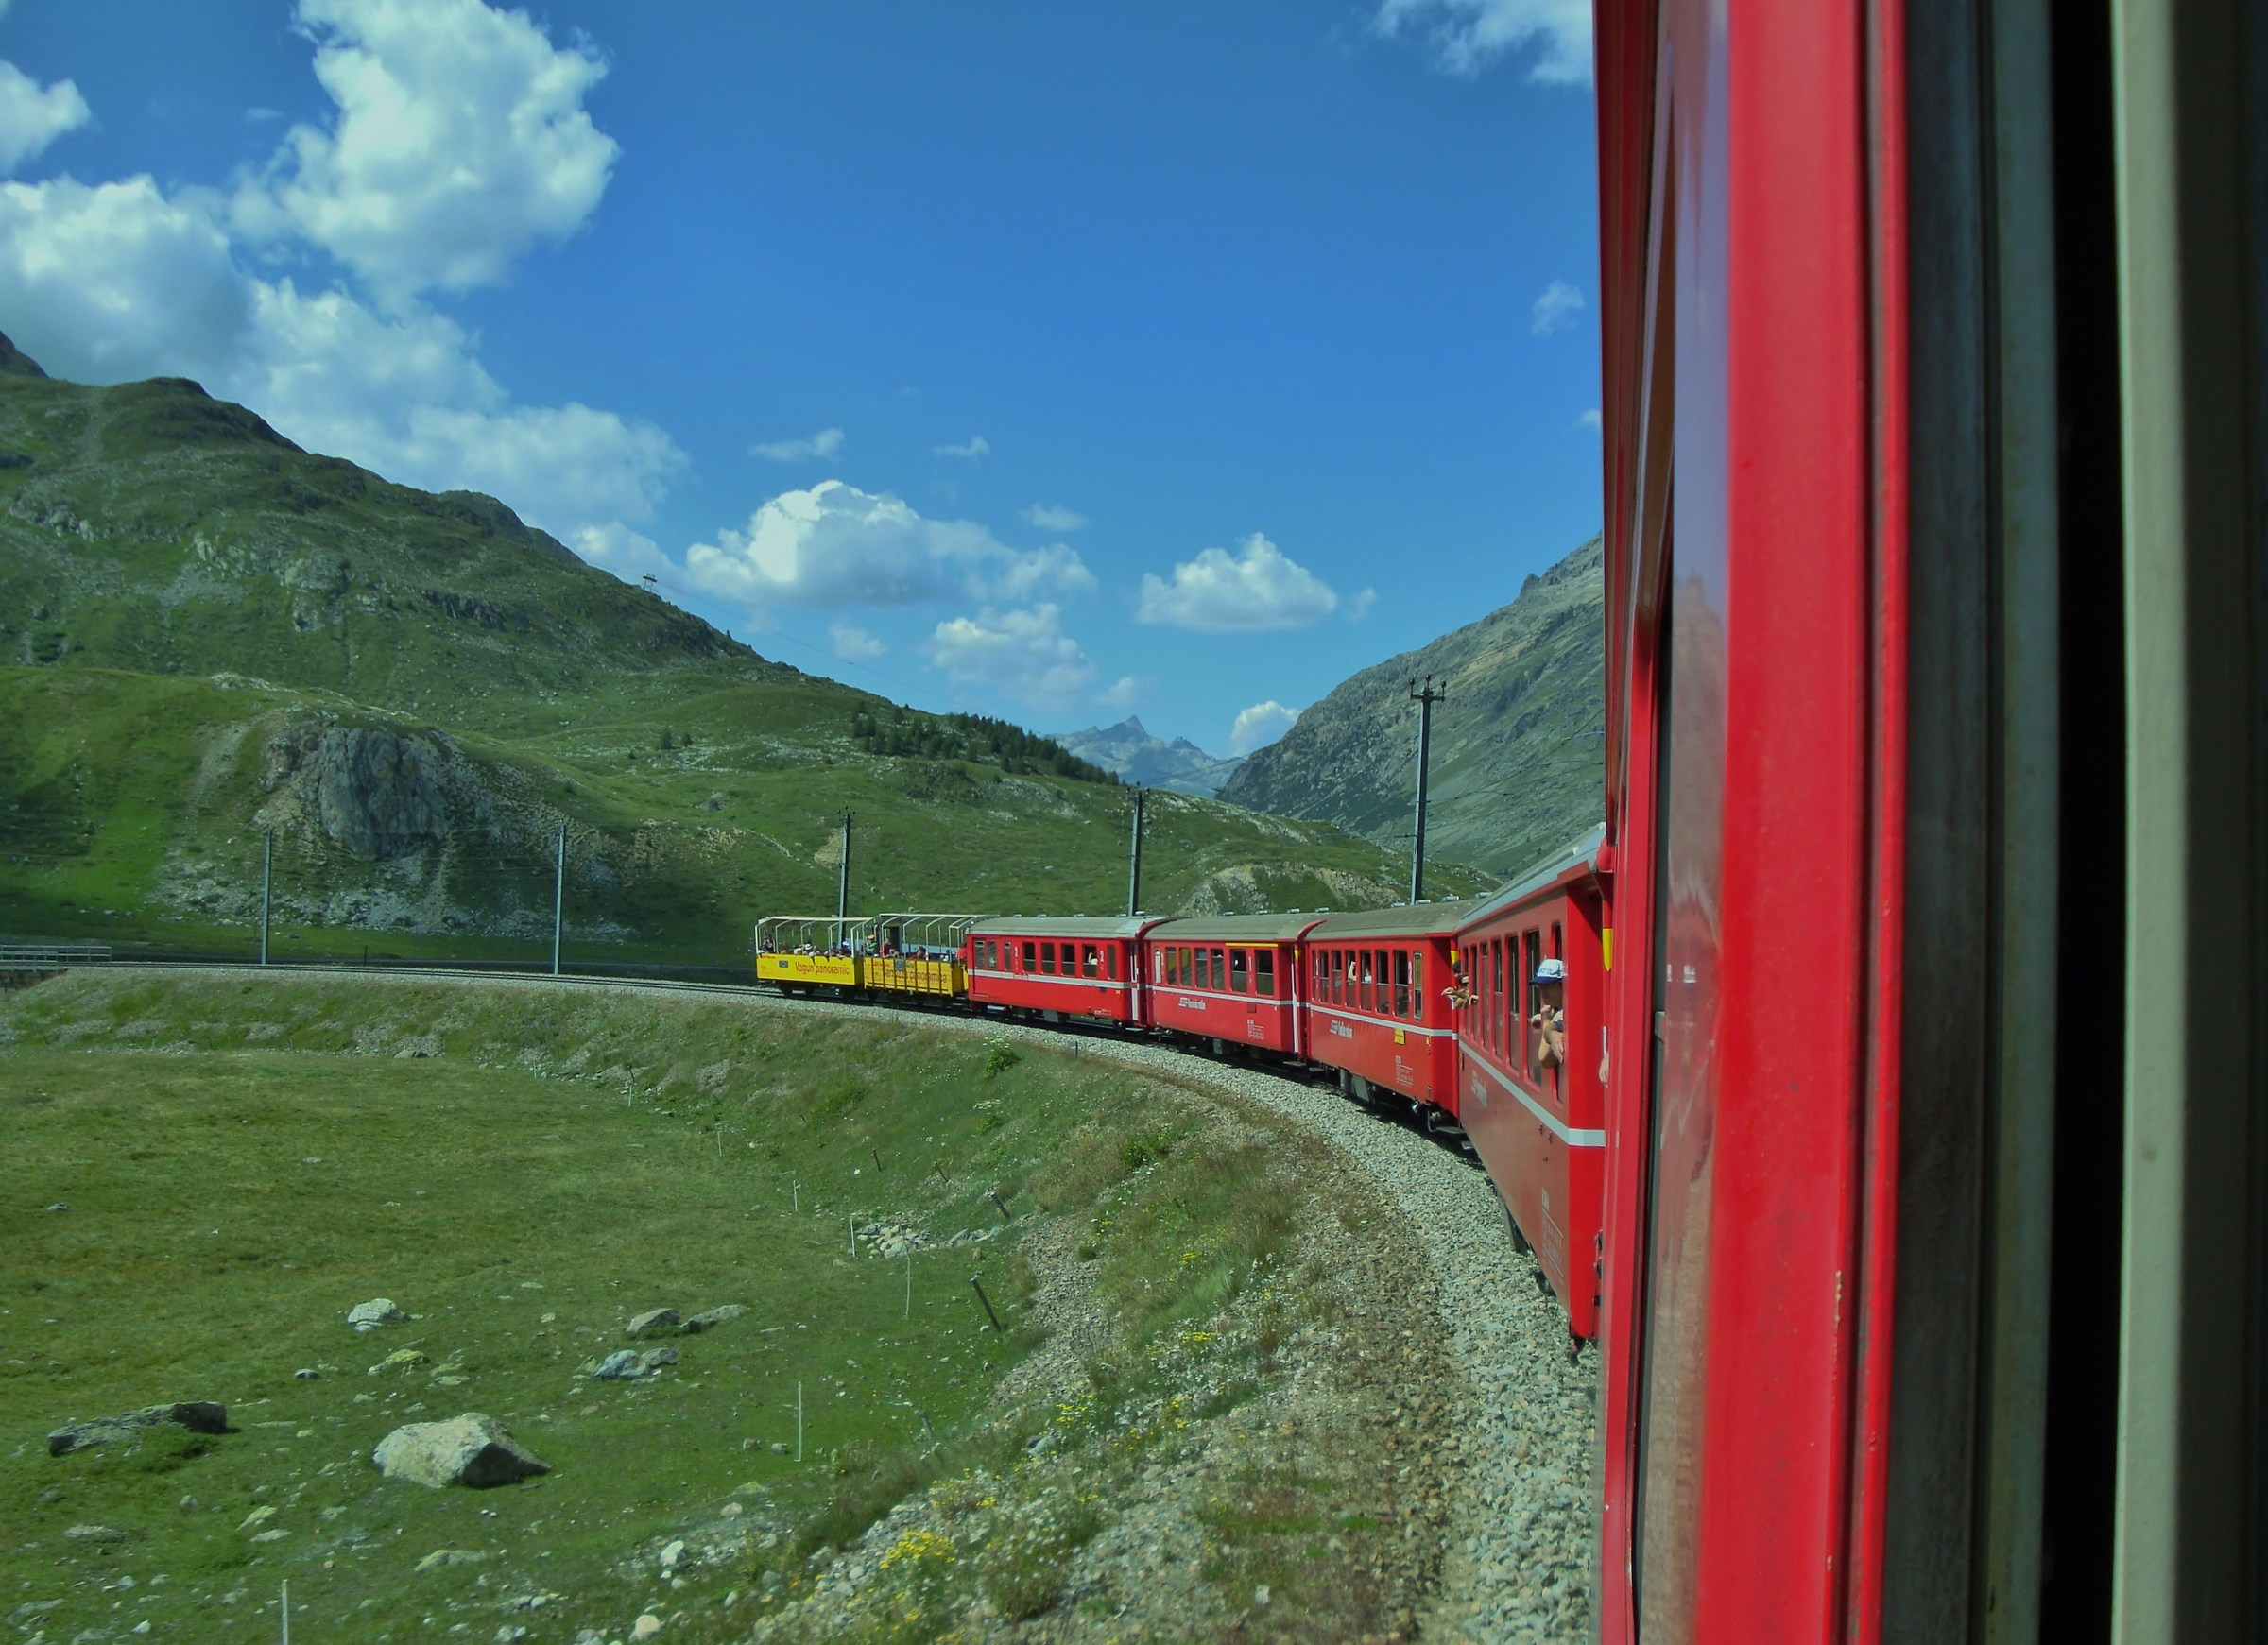 And goes on the Bernina...